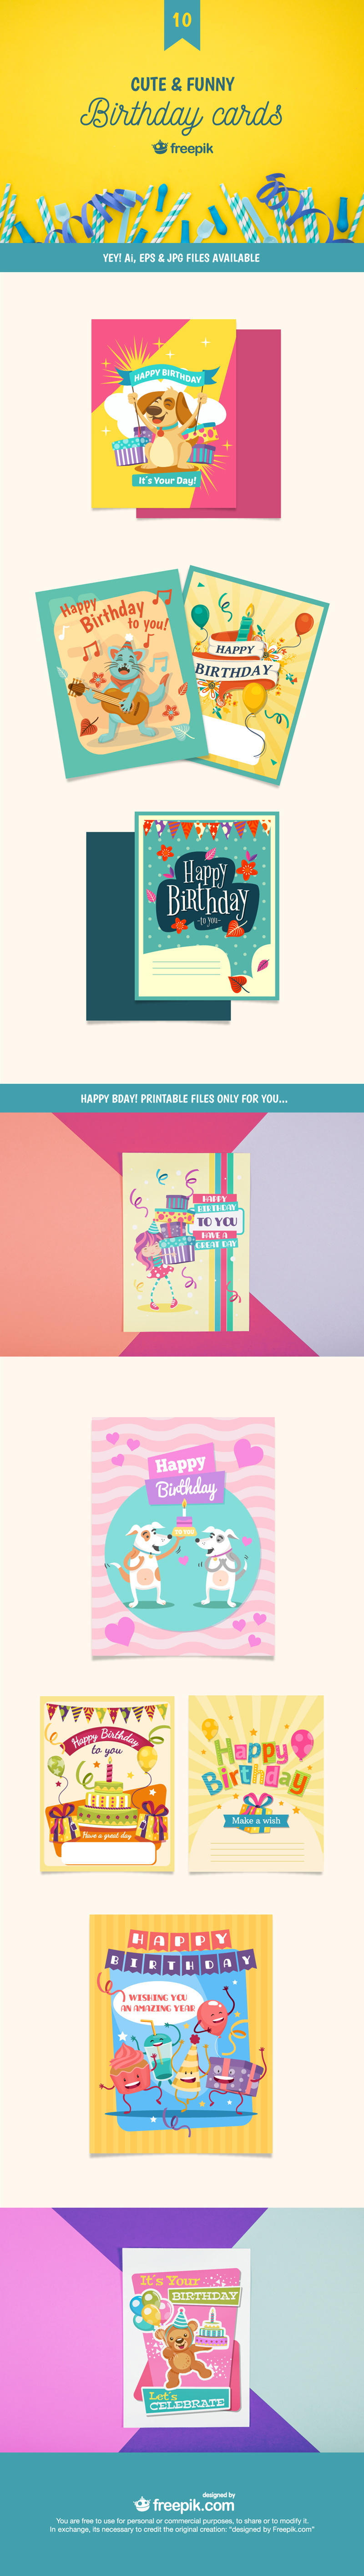 free birthday card designs